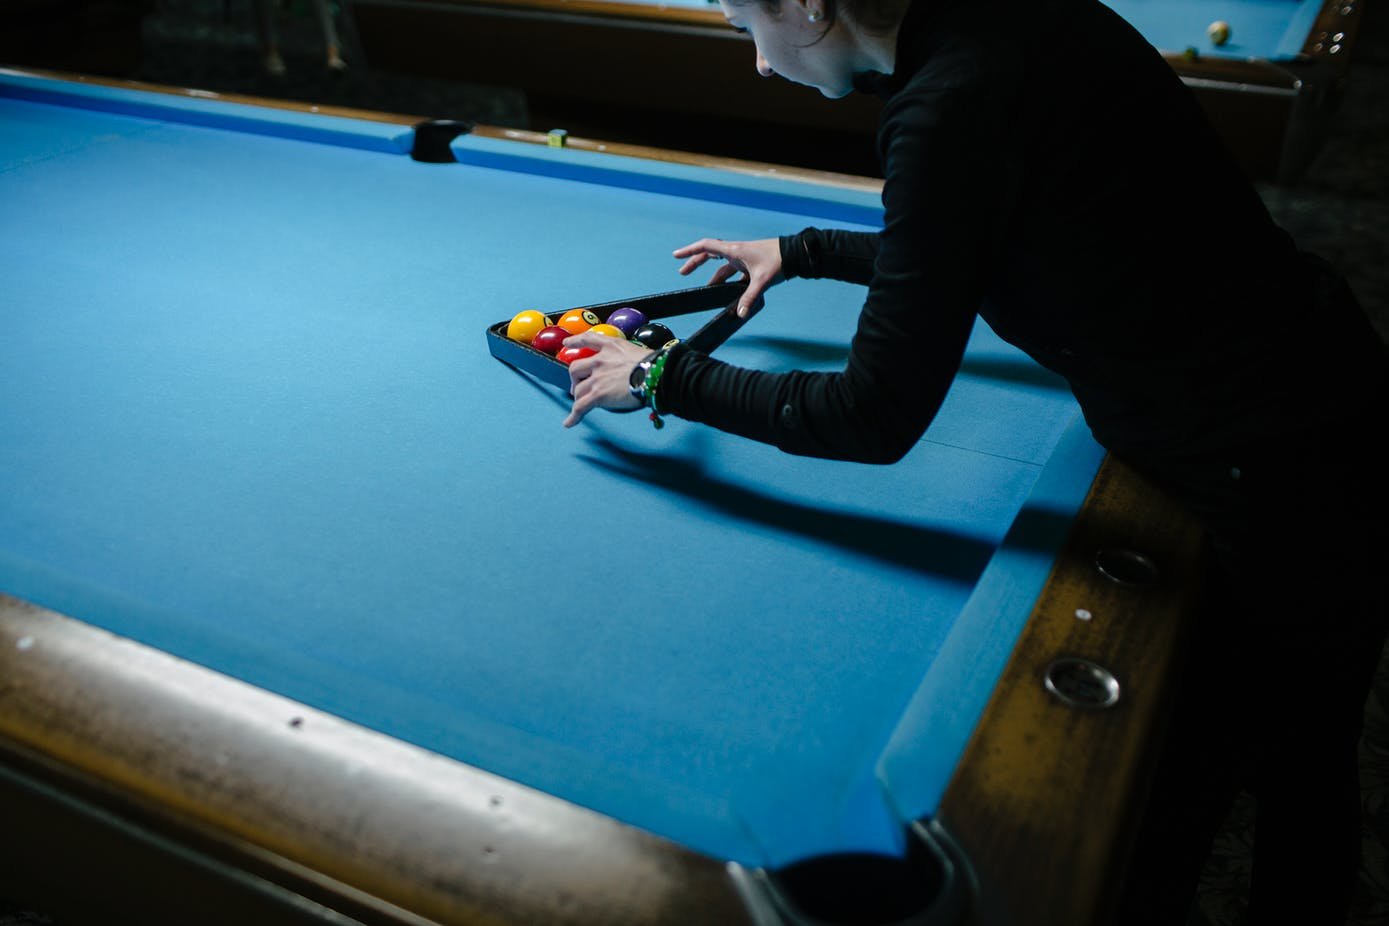 3002a0b5 Ana Plotnikova racks the balls during the West Coast Women's Tour at the  Billiard Palacade in San Francisco.